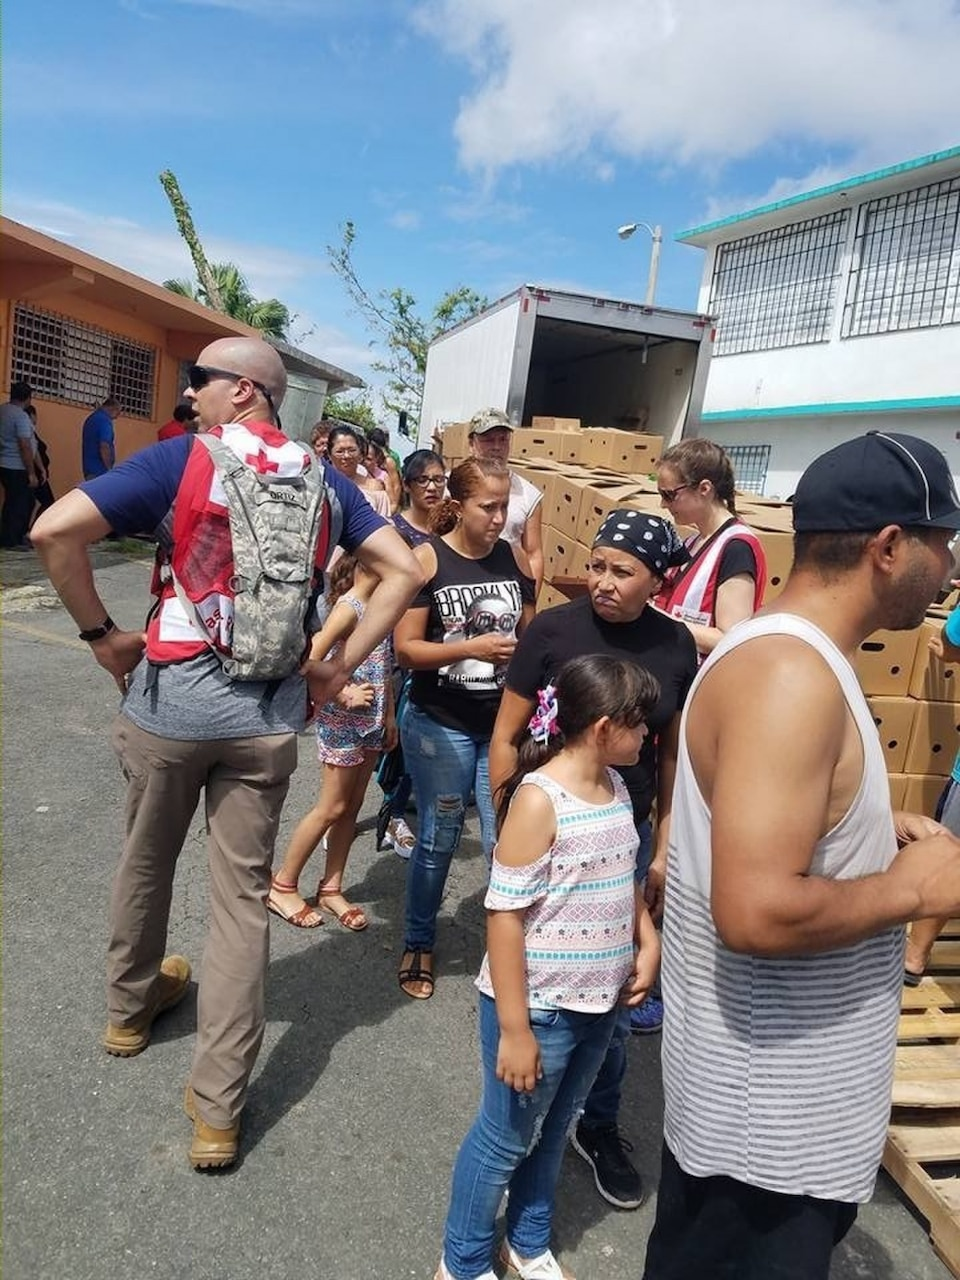 Army Sgt. 1st Class Rafael Ortiz, left, a cybersecurity noncommissioned officer with the 781st Military Intelligence Battalion and a Red Cross team leader, works with a member of his team to provide assistance items to local residents in Ortiz's hometown during a humanitarian mission in Naranjito, Puerto Rico, Oct. 15, 2017. Courtesy photo